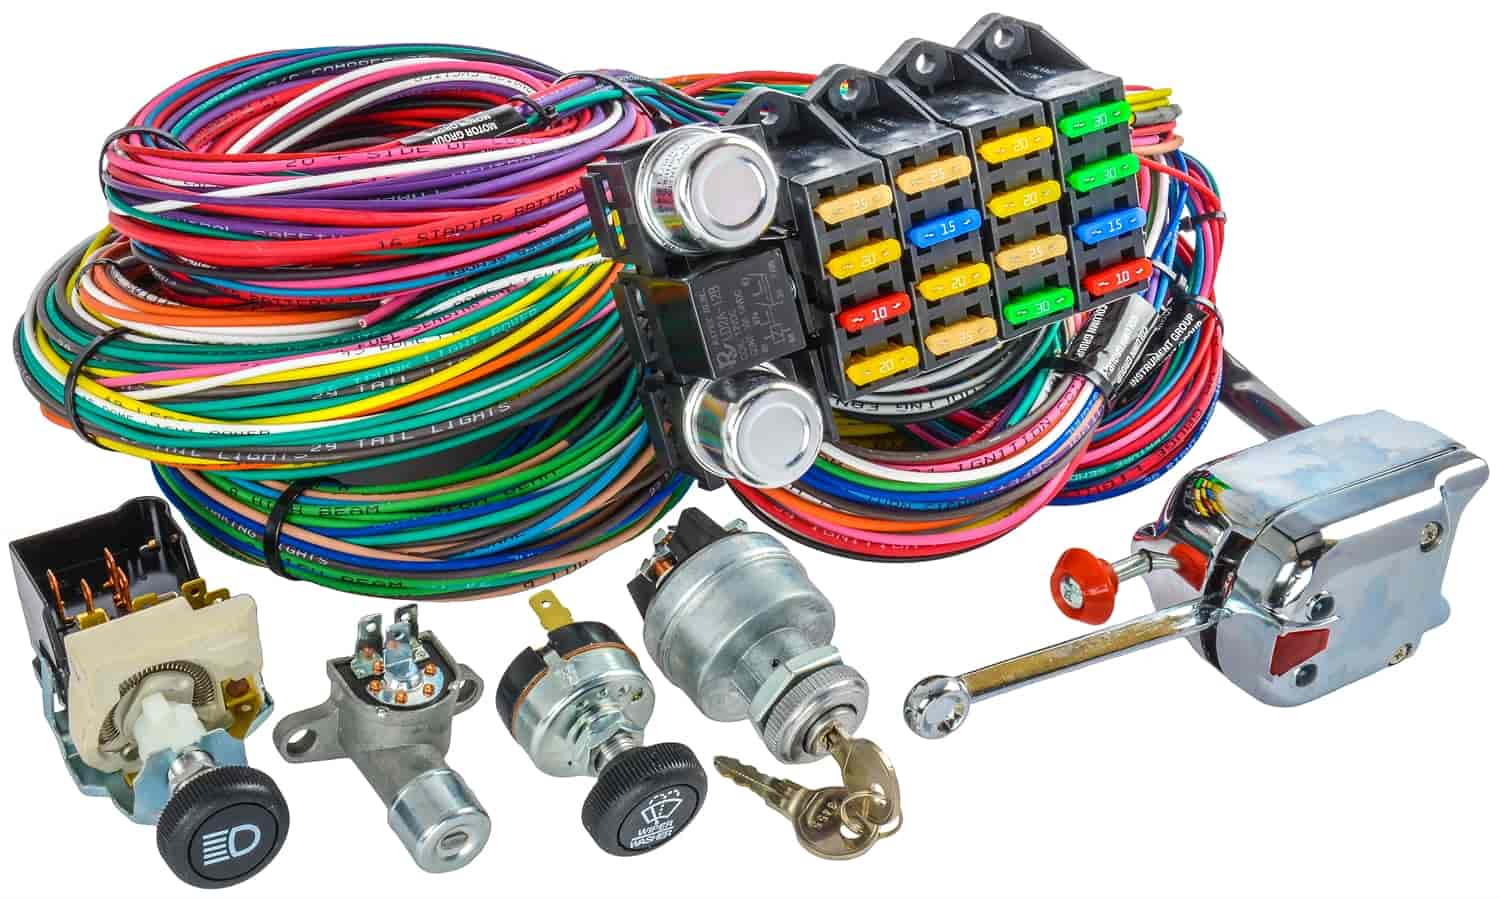 555 10405k jegs performance products 10405k universal wiring harness universal wiring harness kits at webbmarketing.co